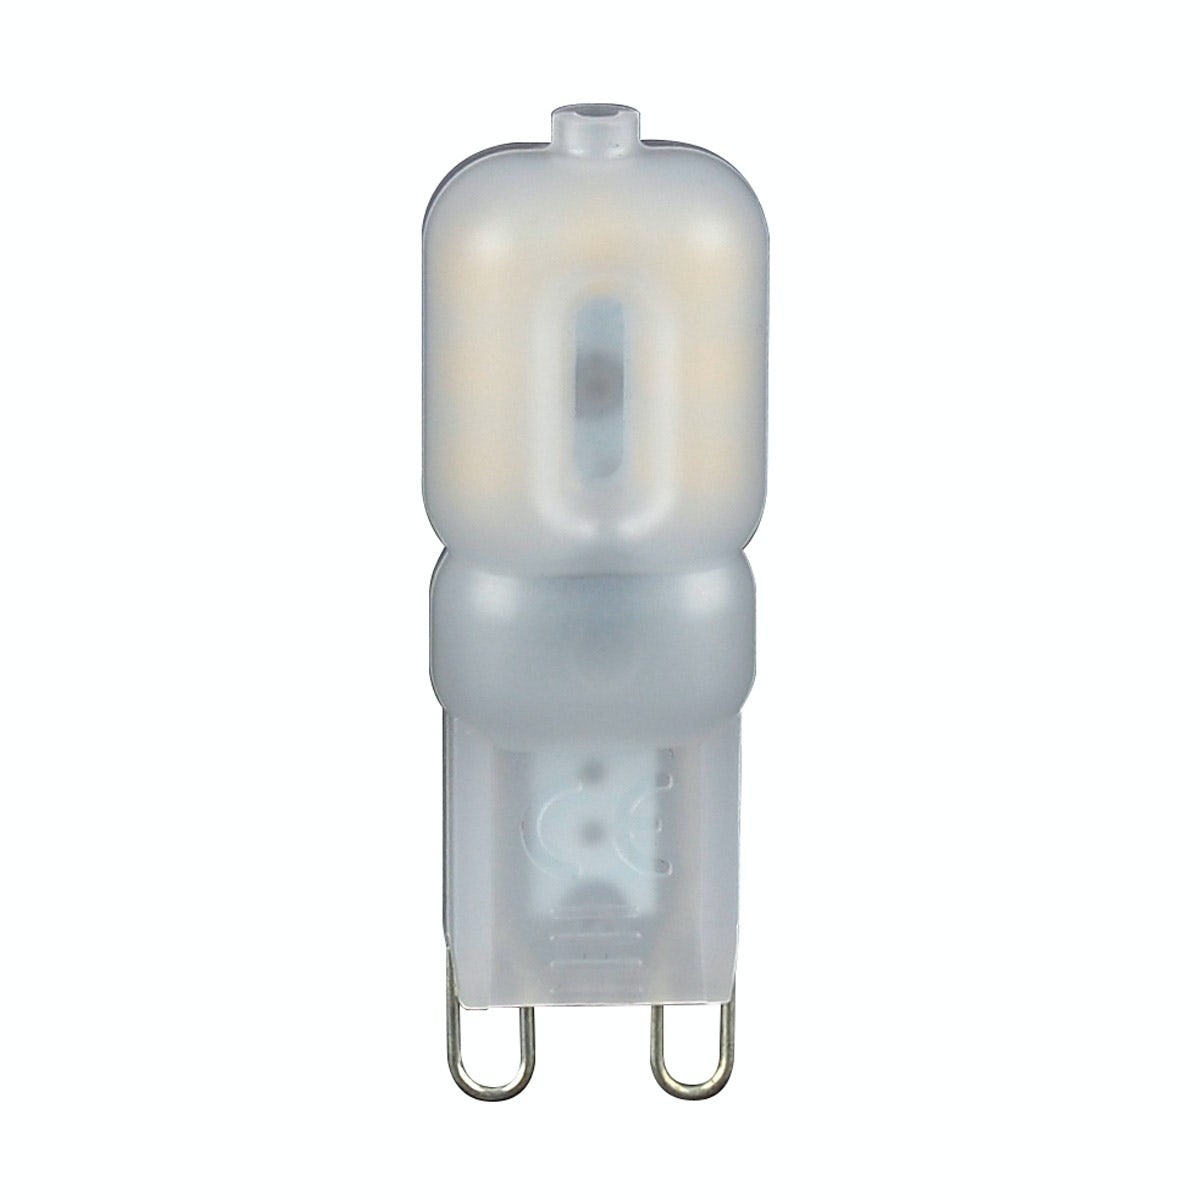 Warm white G9 capsule LED 3W bulb